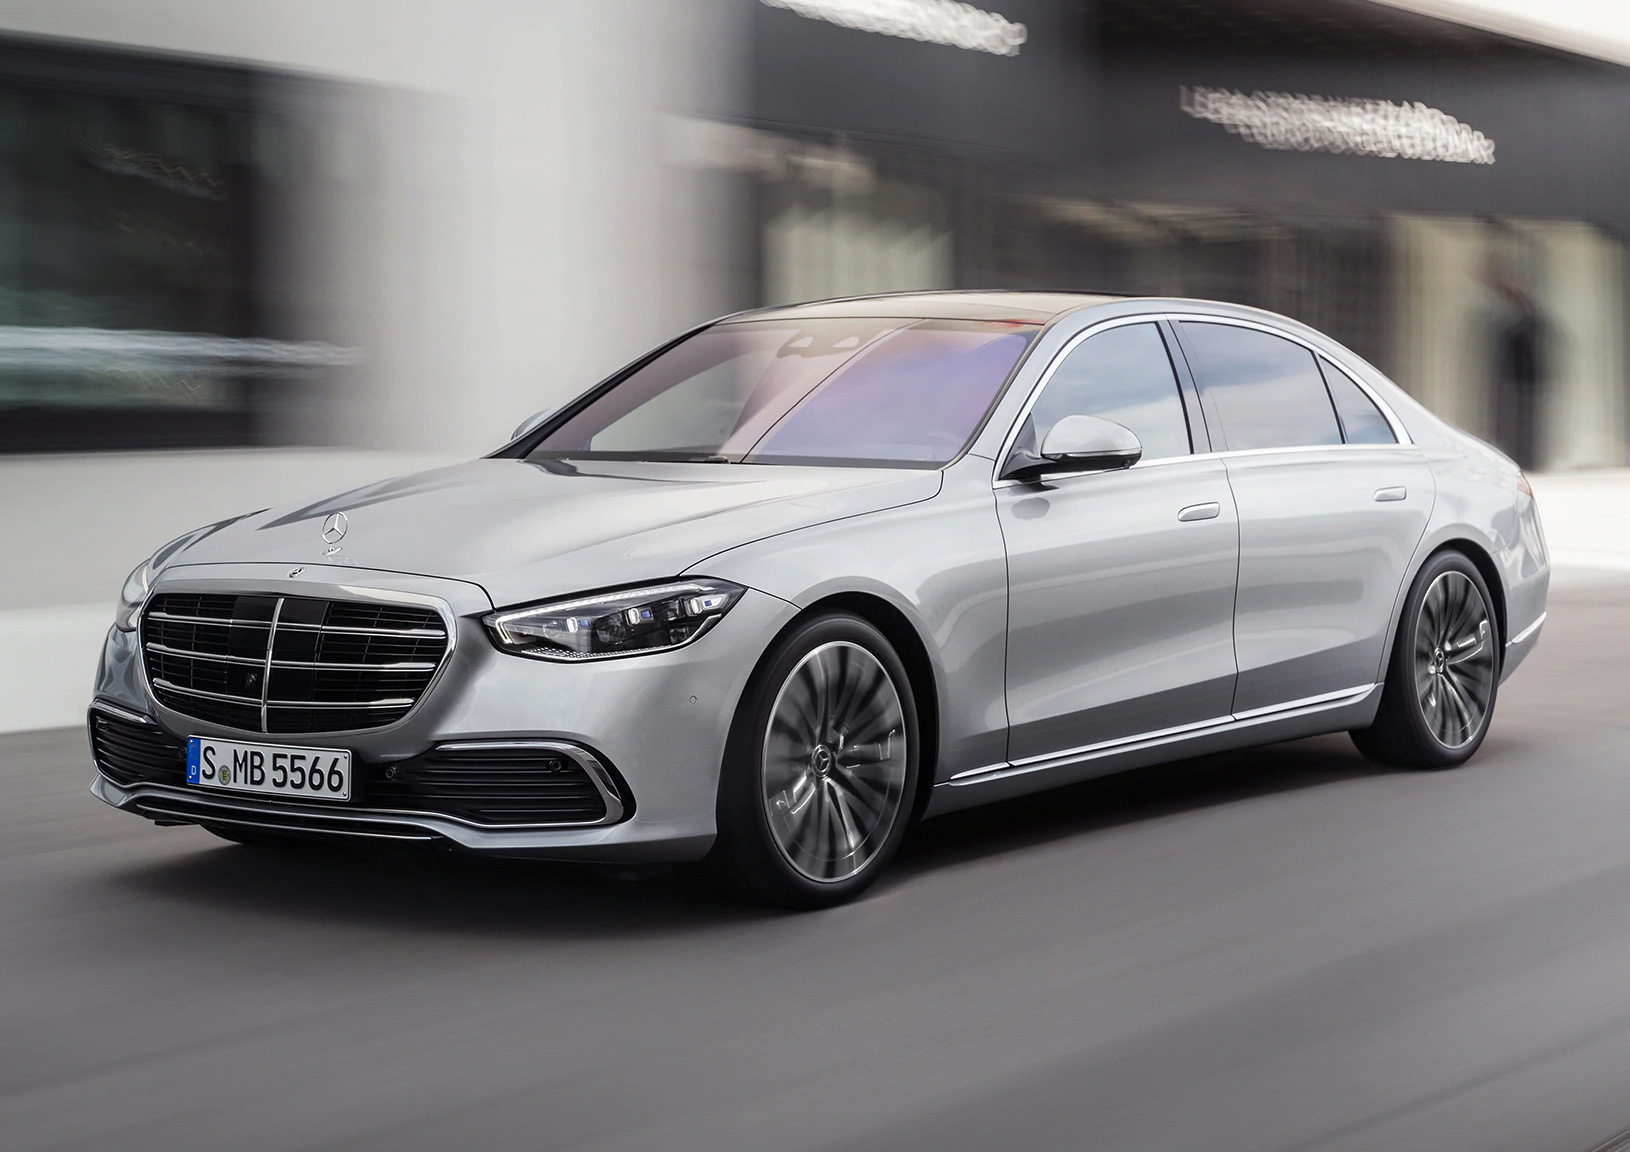 Mercedes Unveils Redesigned 2021 S-Class at werd.com